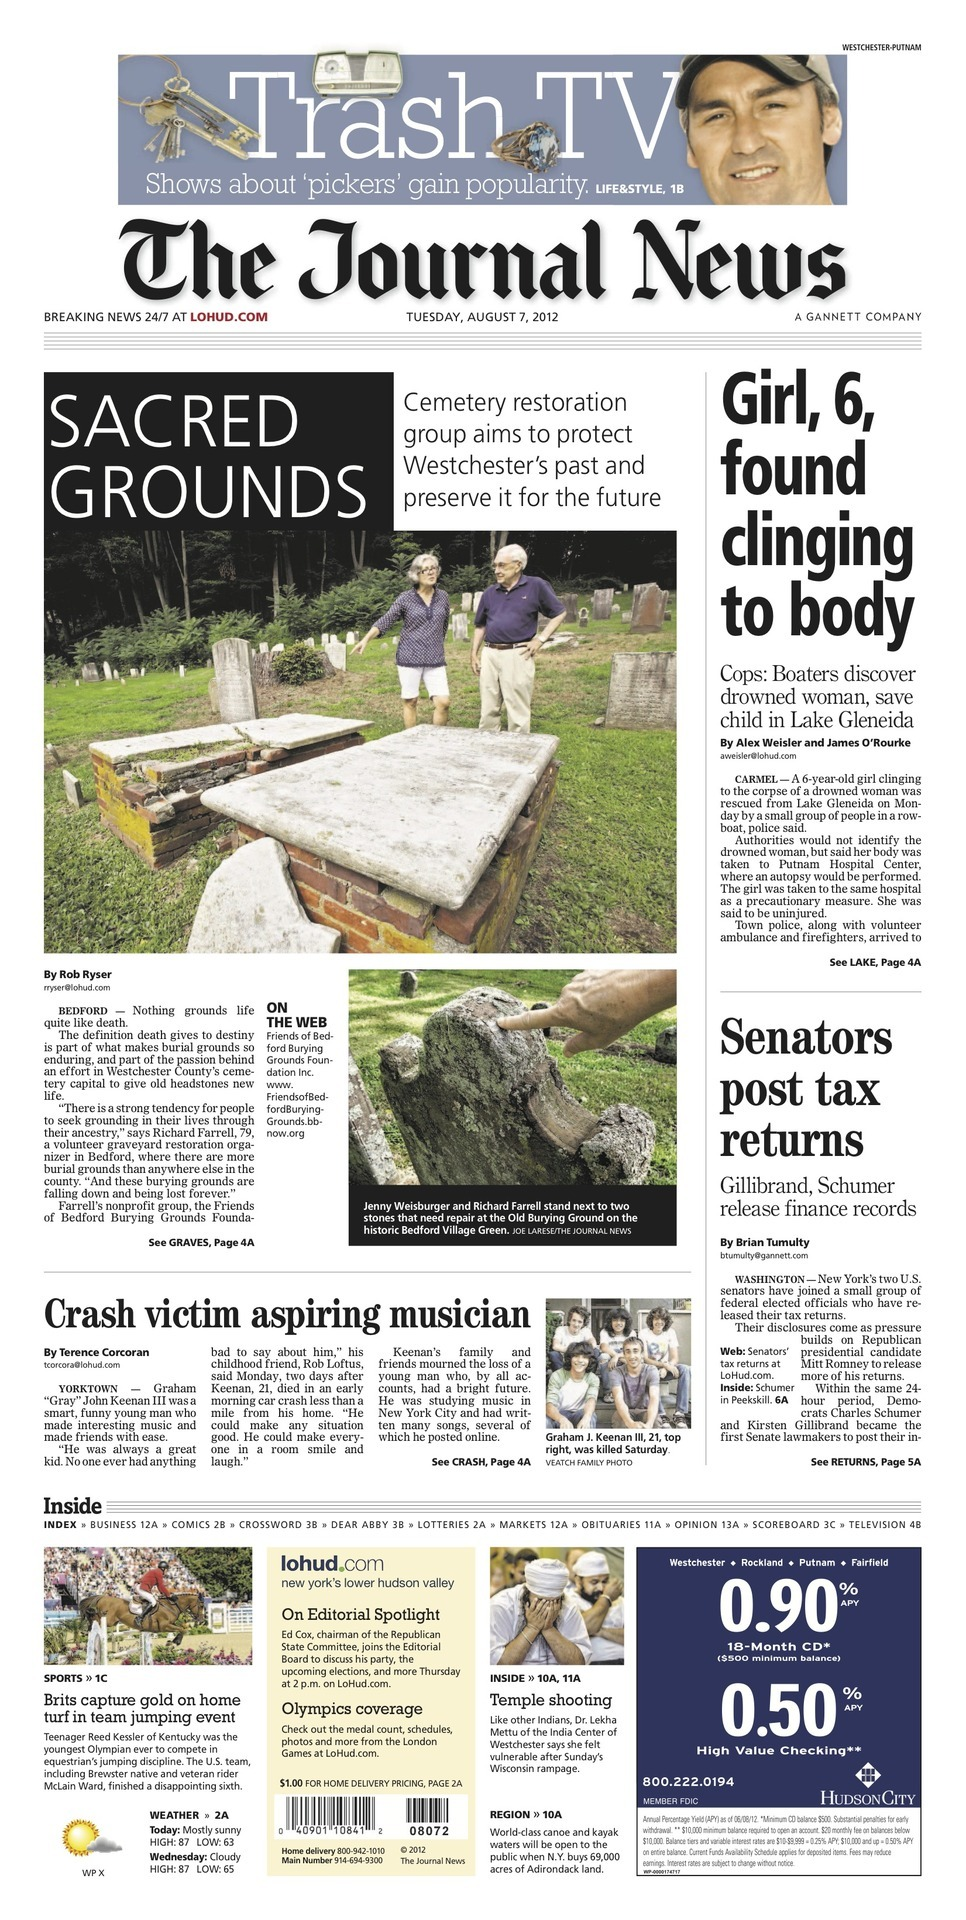 Headlines from Tuesday, Aug. 7: SACRED GROUNDS  Girl, 6, found clinging to body Senators post tax returns  Crash victim aspiring musician